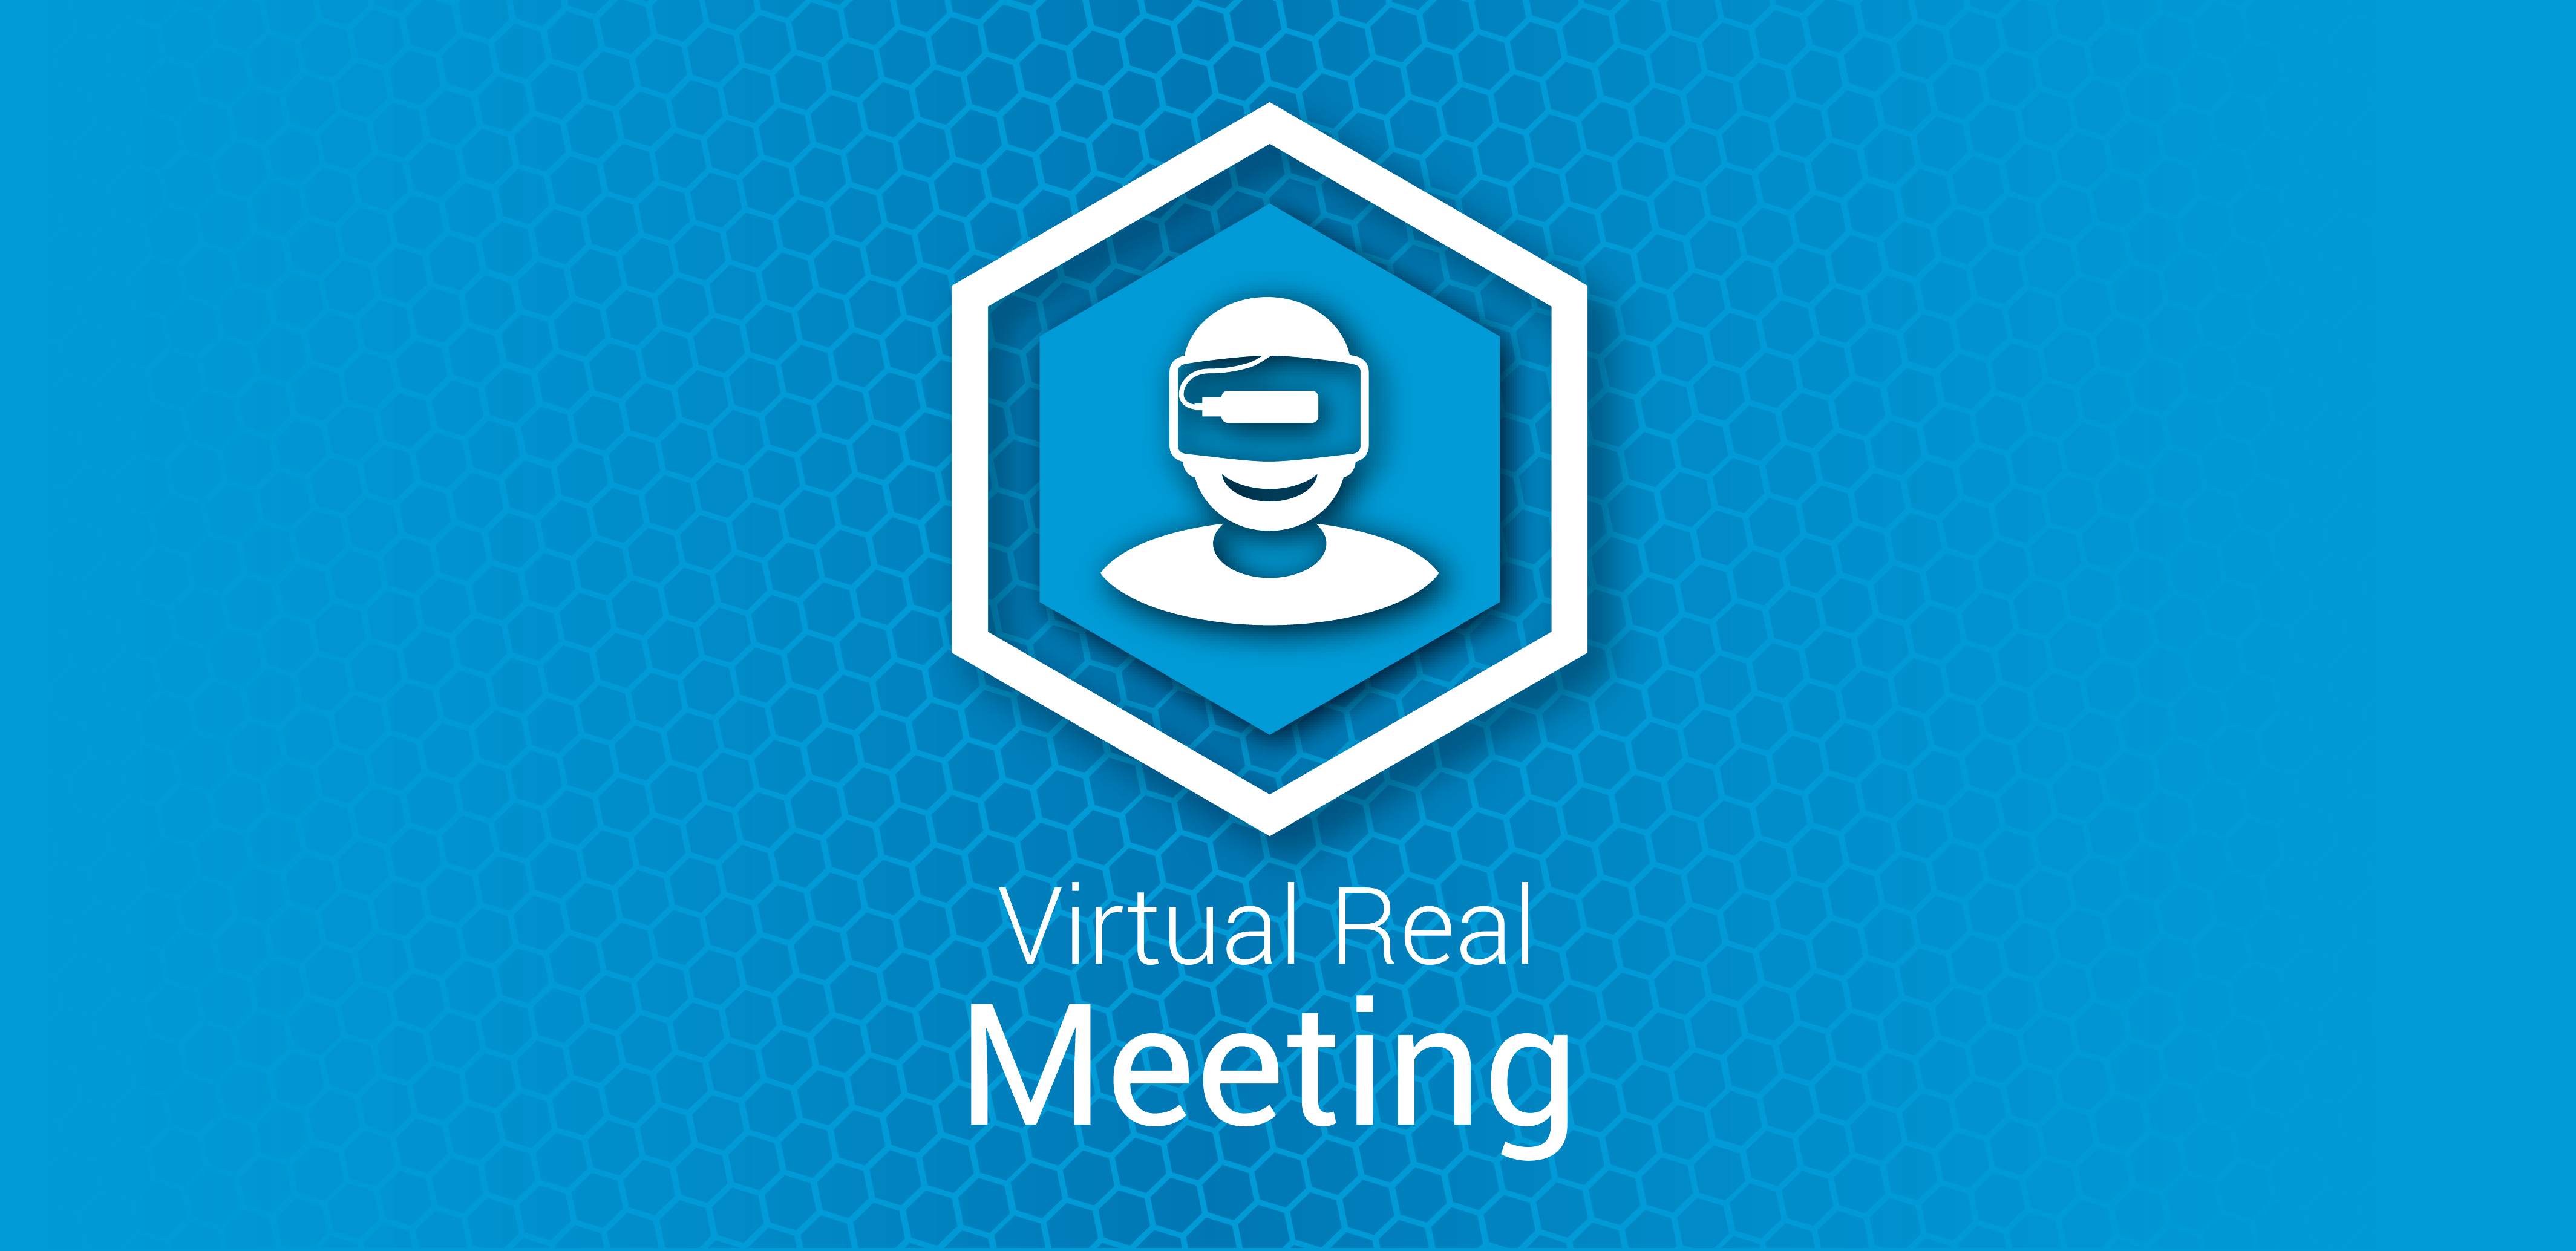 Virtual Real Meeting